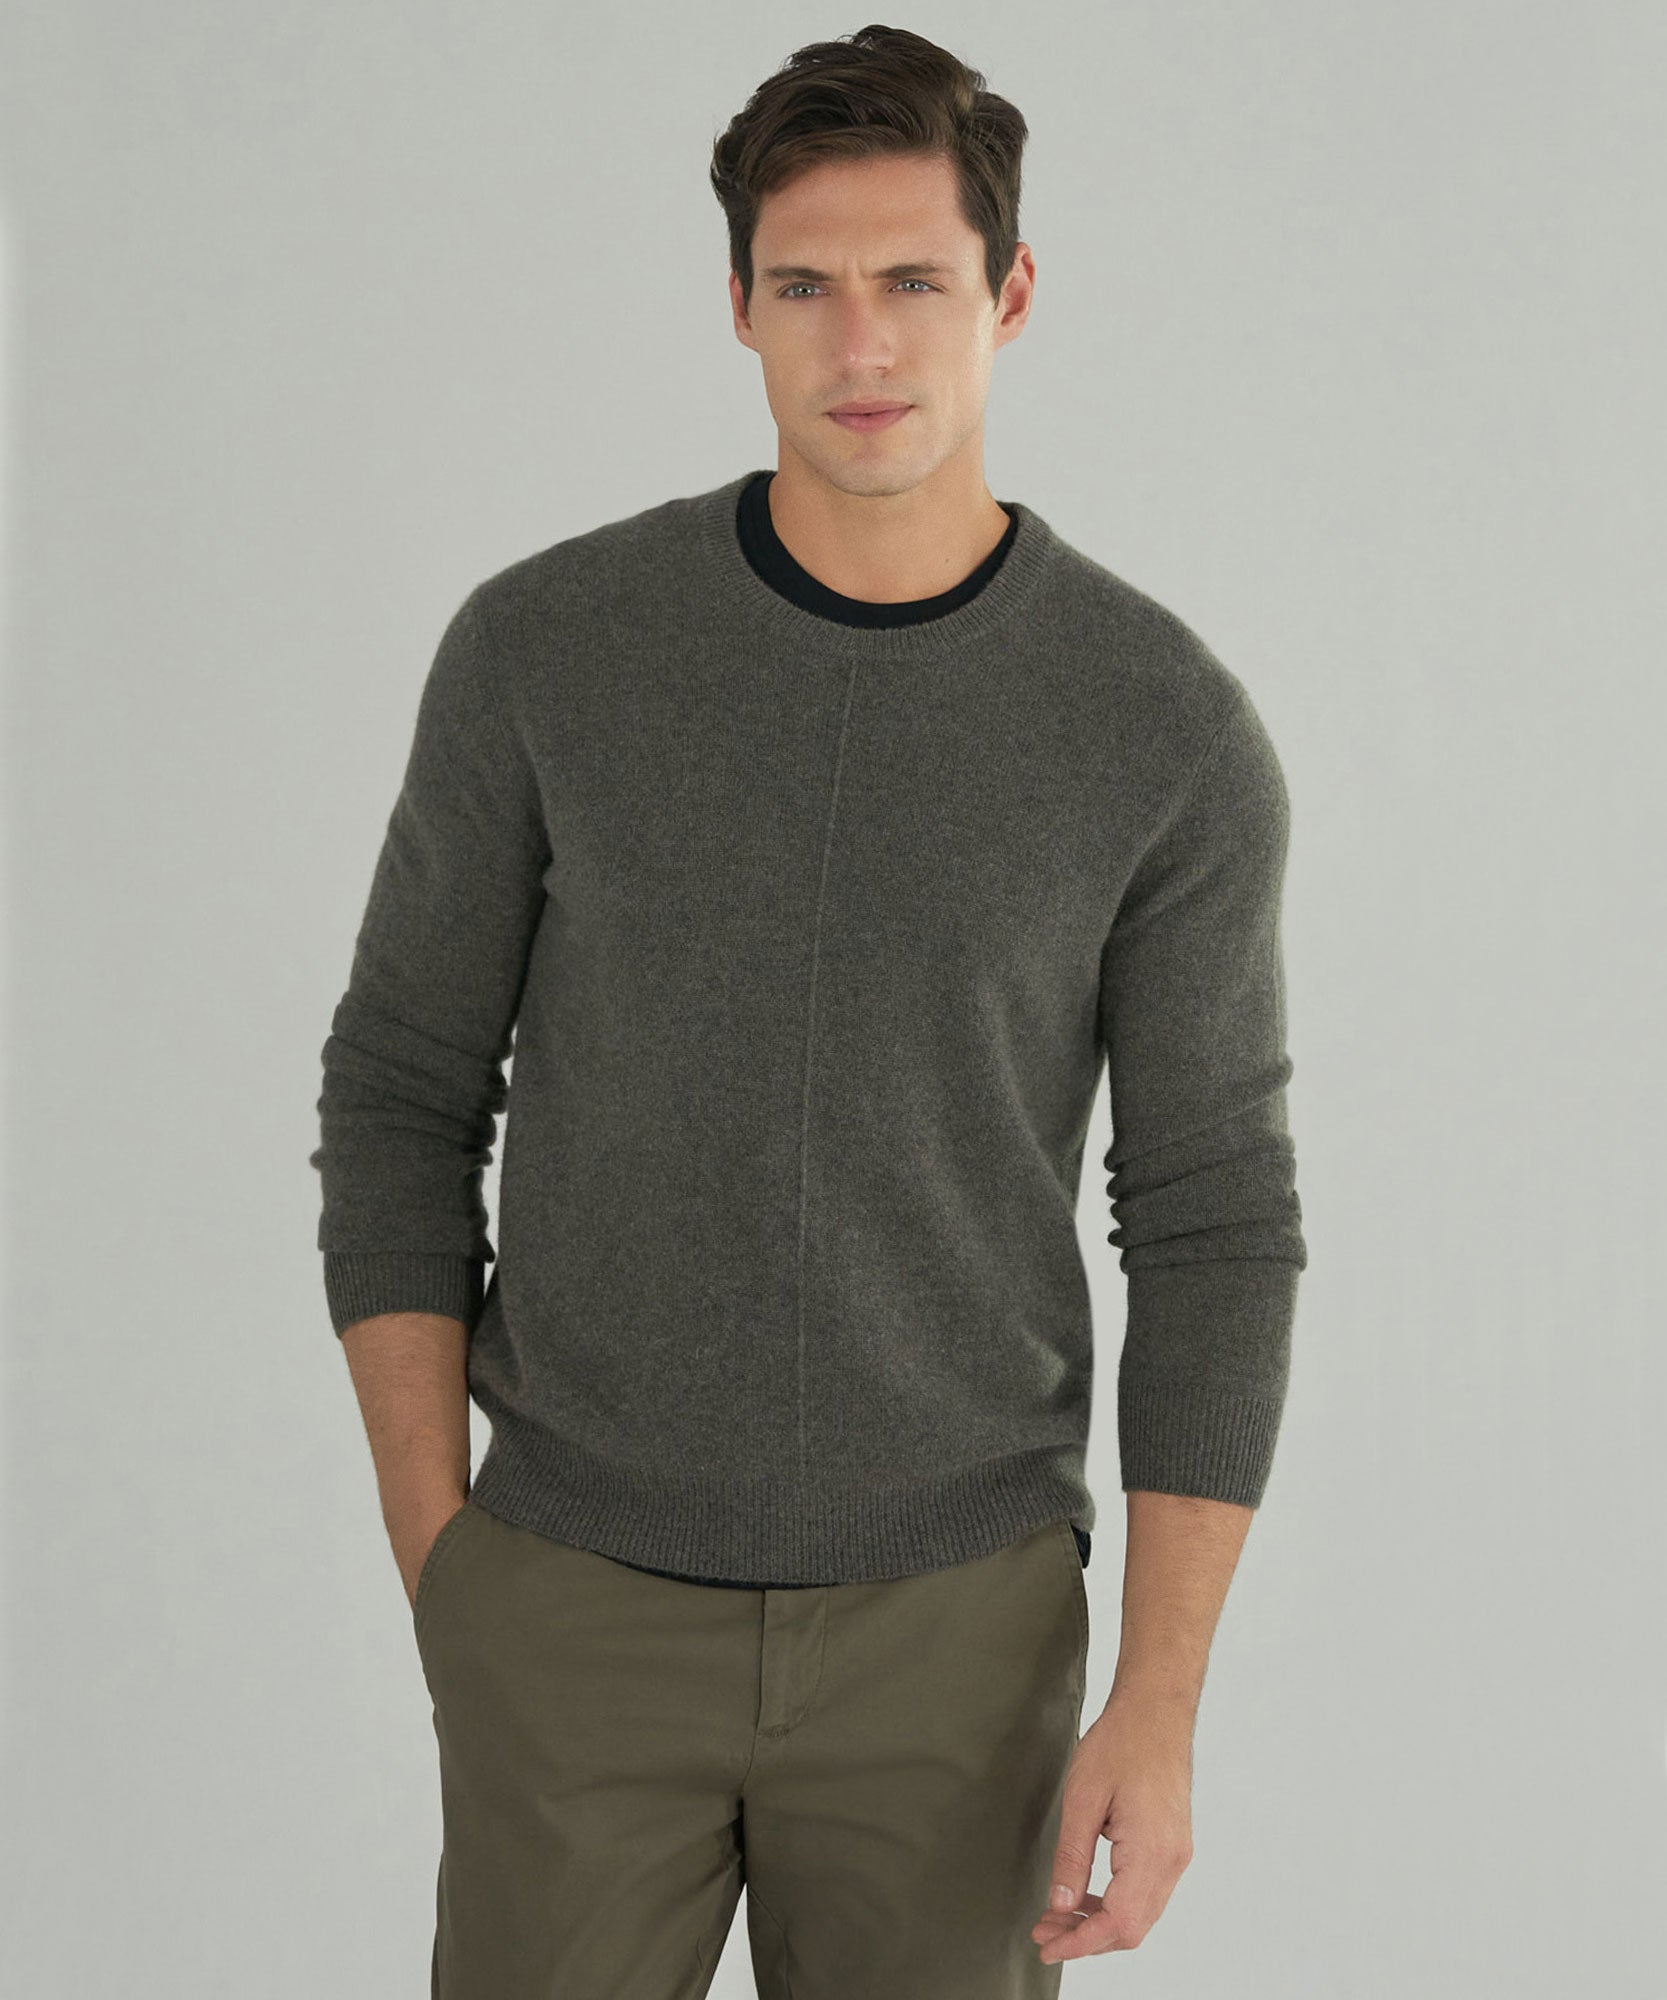 Heather Army Cashmere Exposed Seam Crew Neck Sweater - Men's Sweater by ATM Anthony Thomas Melillo